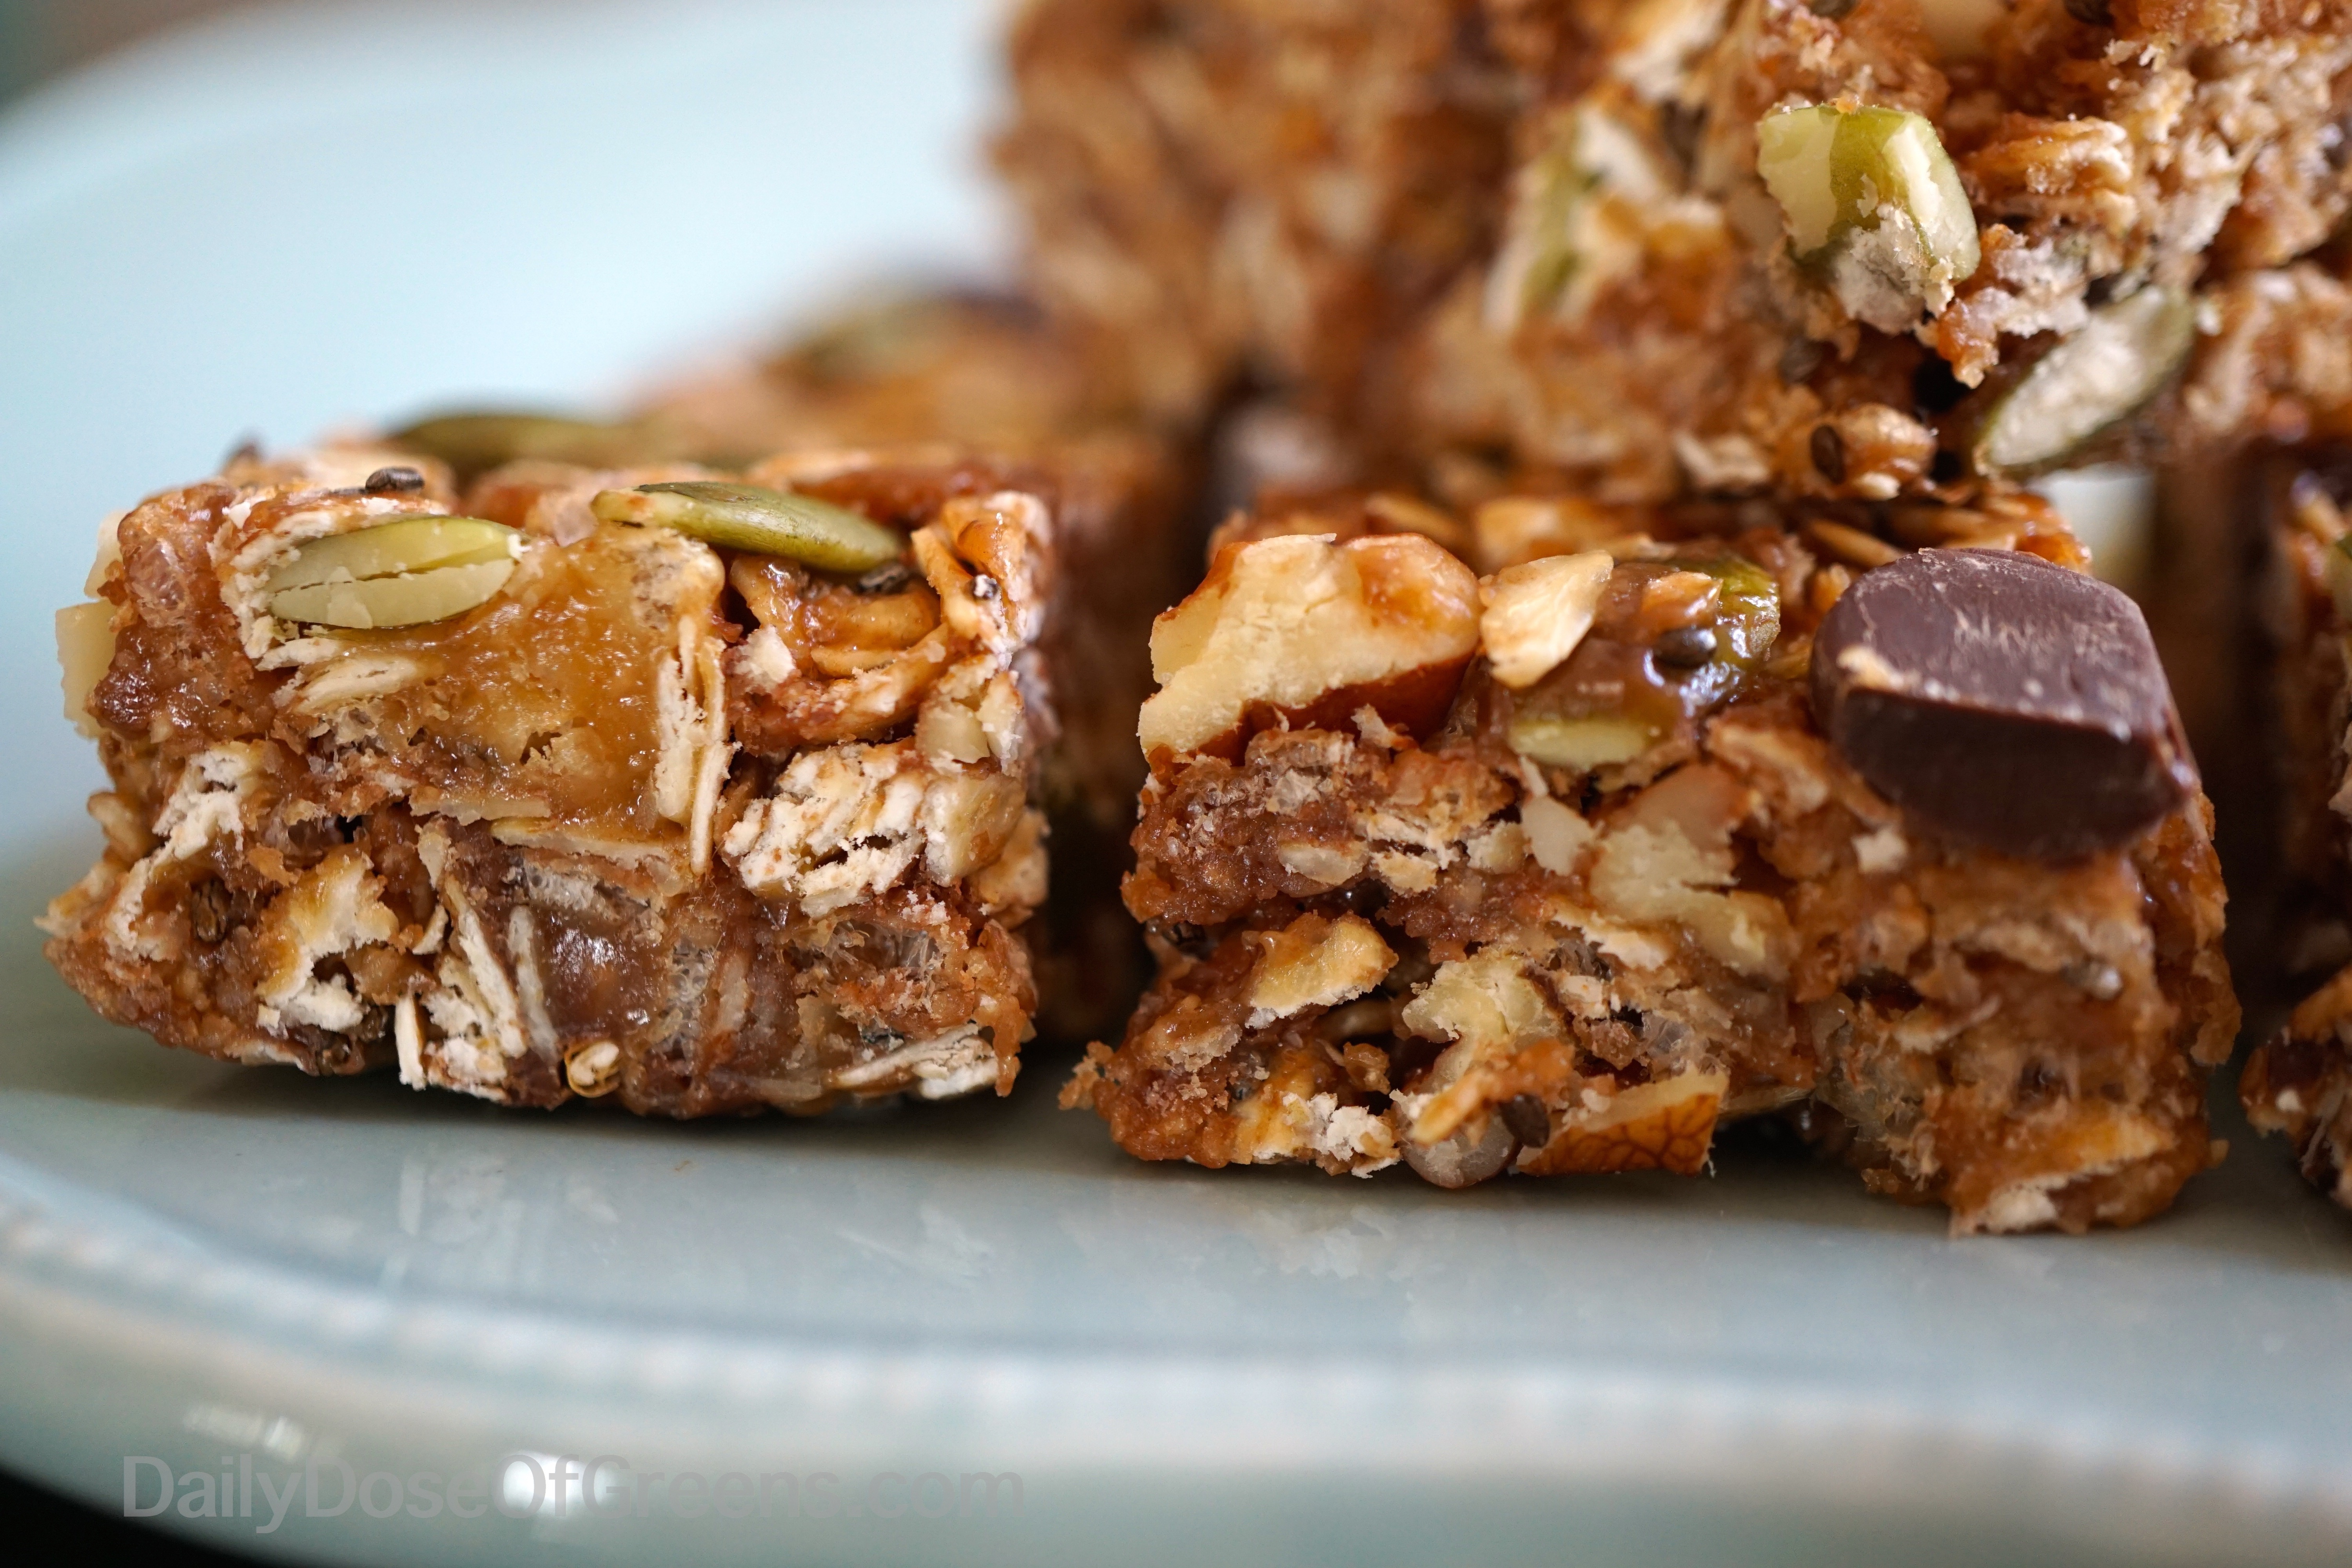 Peanut Butter and Chocolate Chip Granola Bars - Daily Dose of Greens